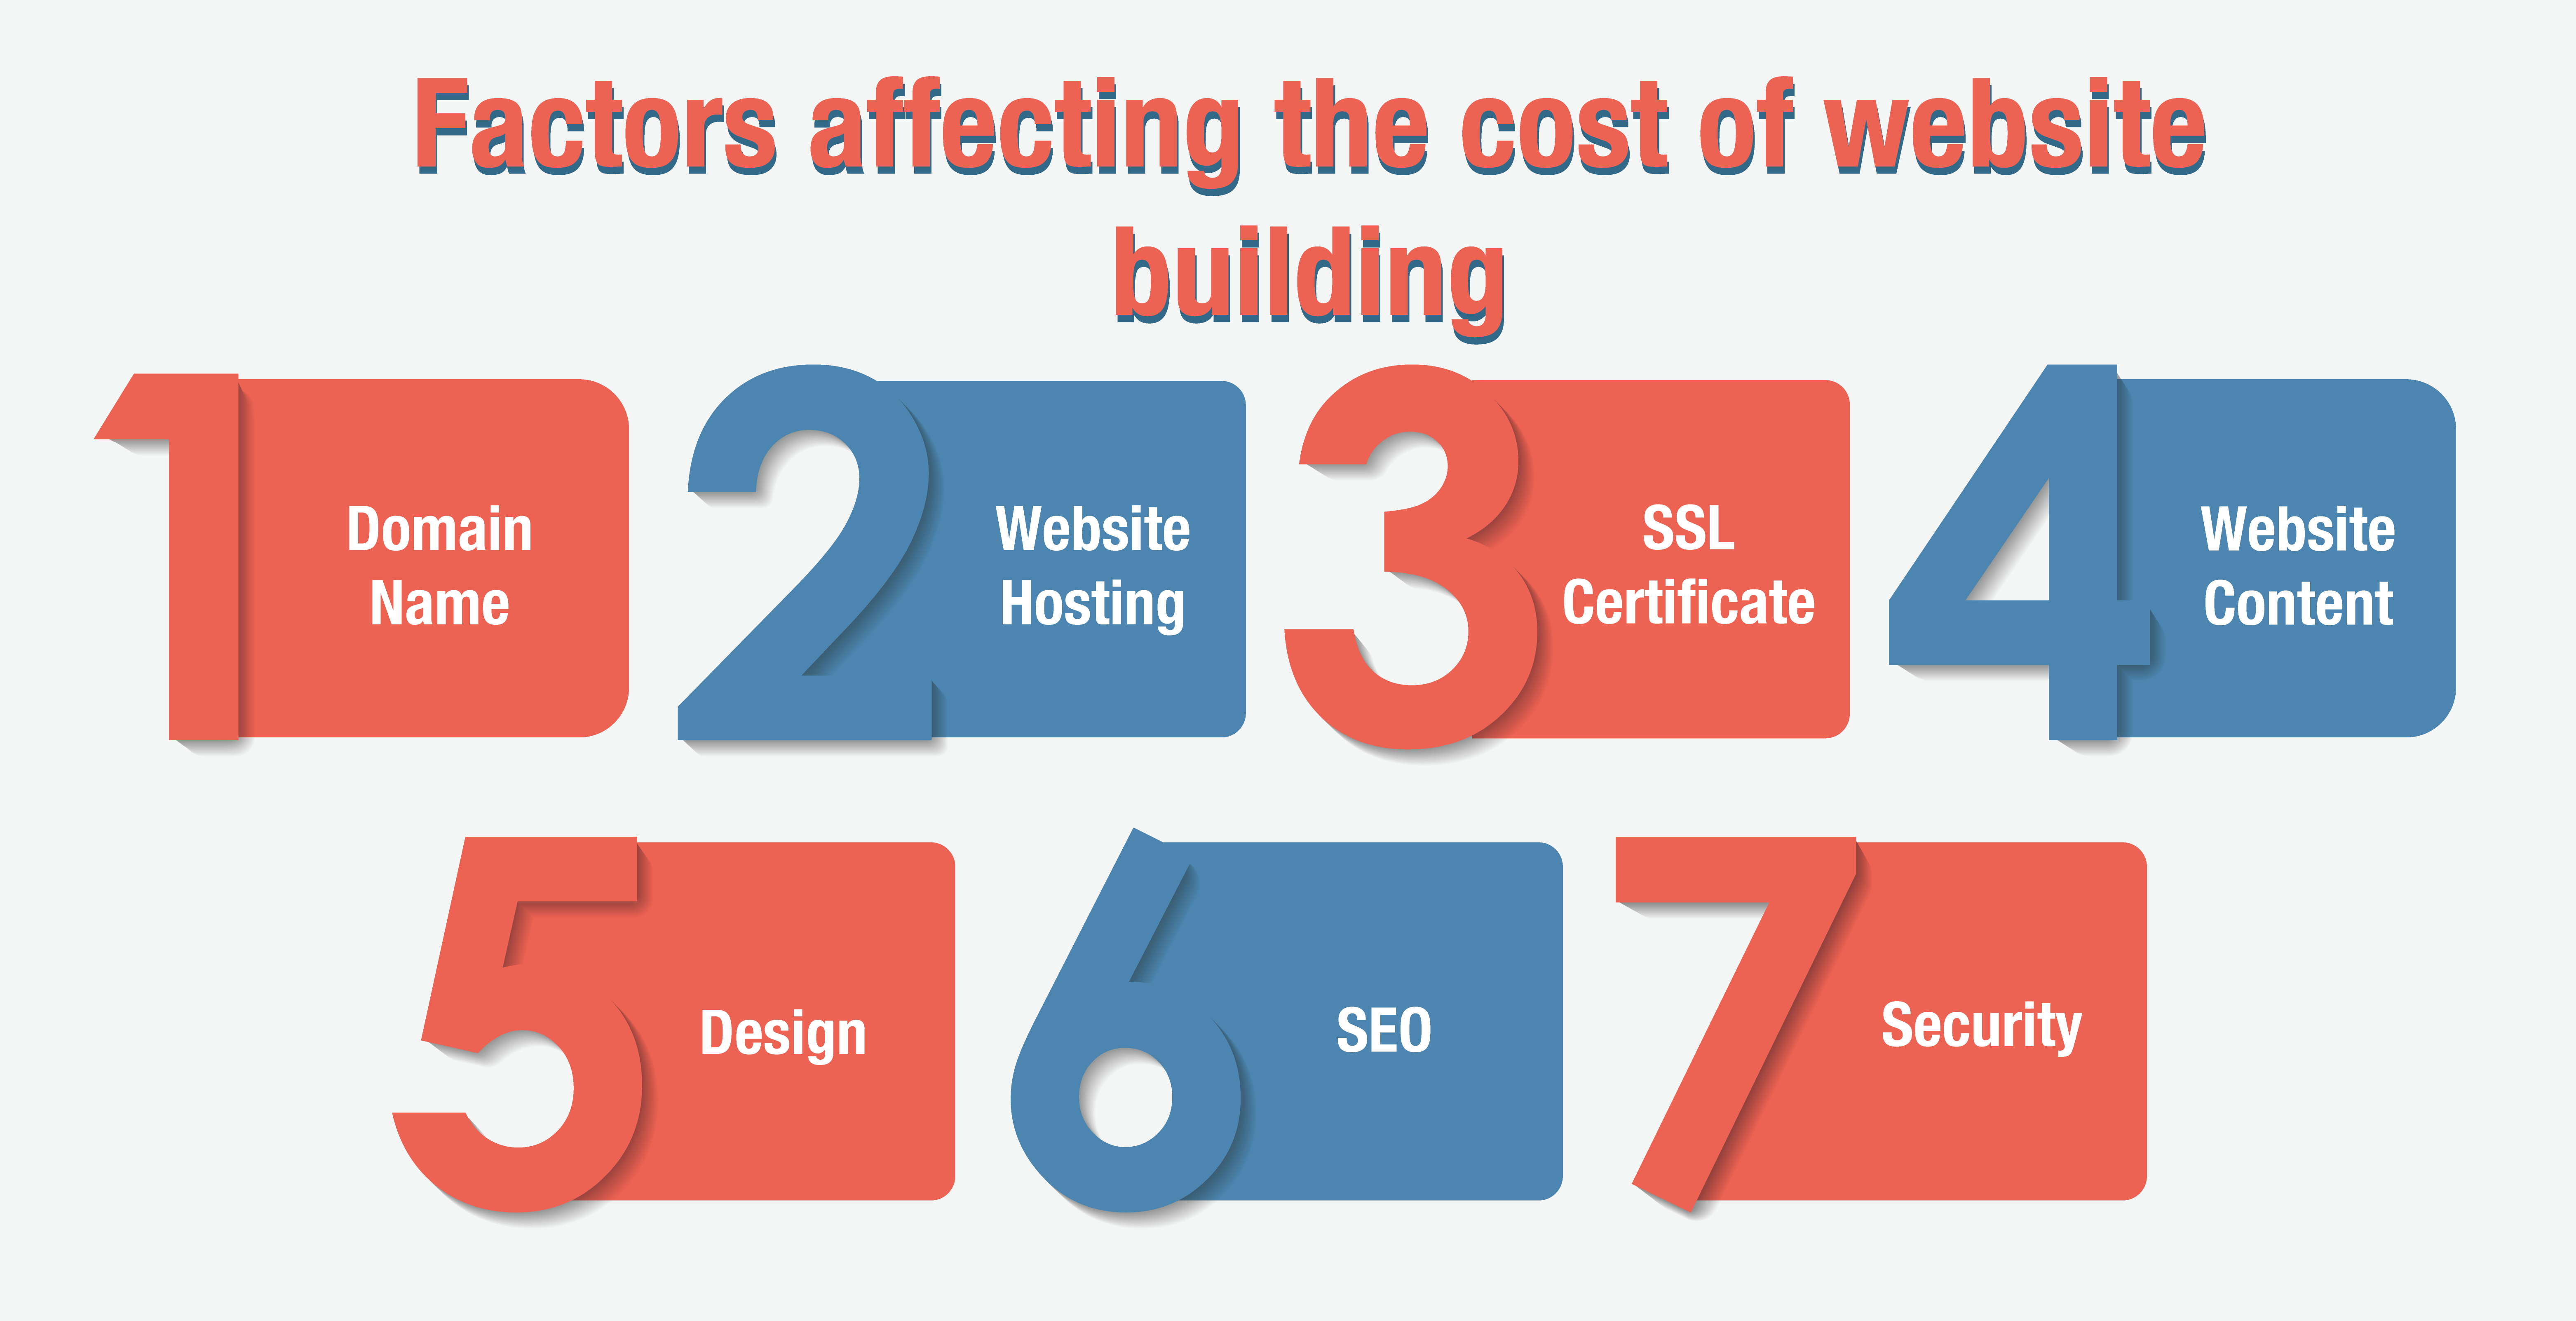 Factors affecting the cost of website building